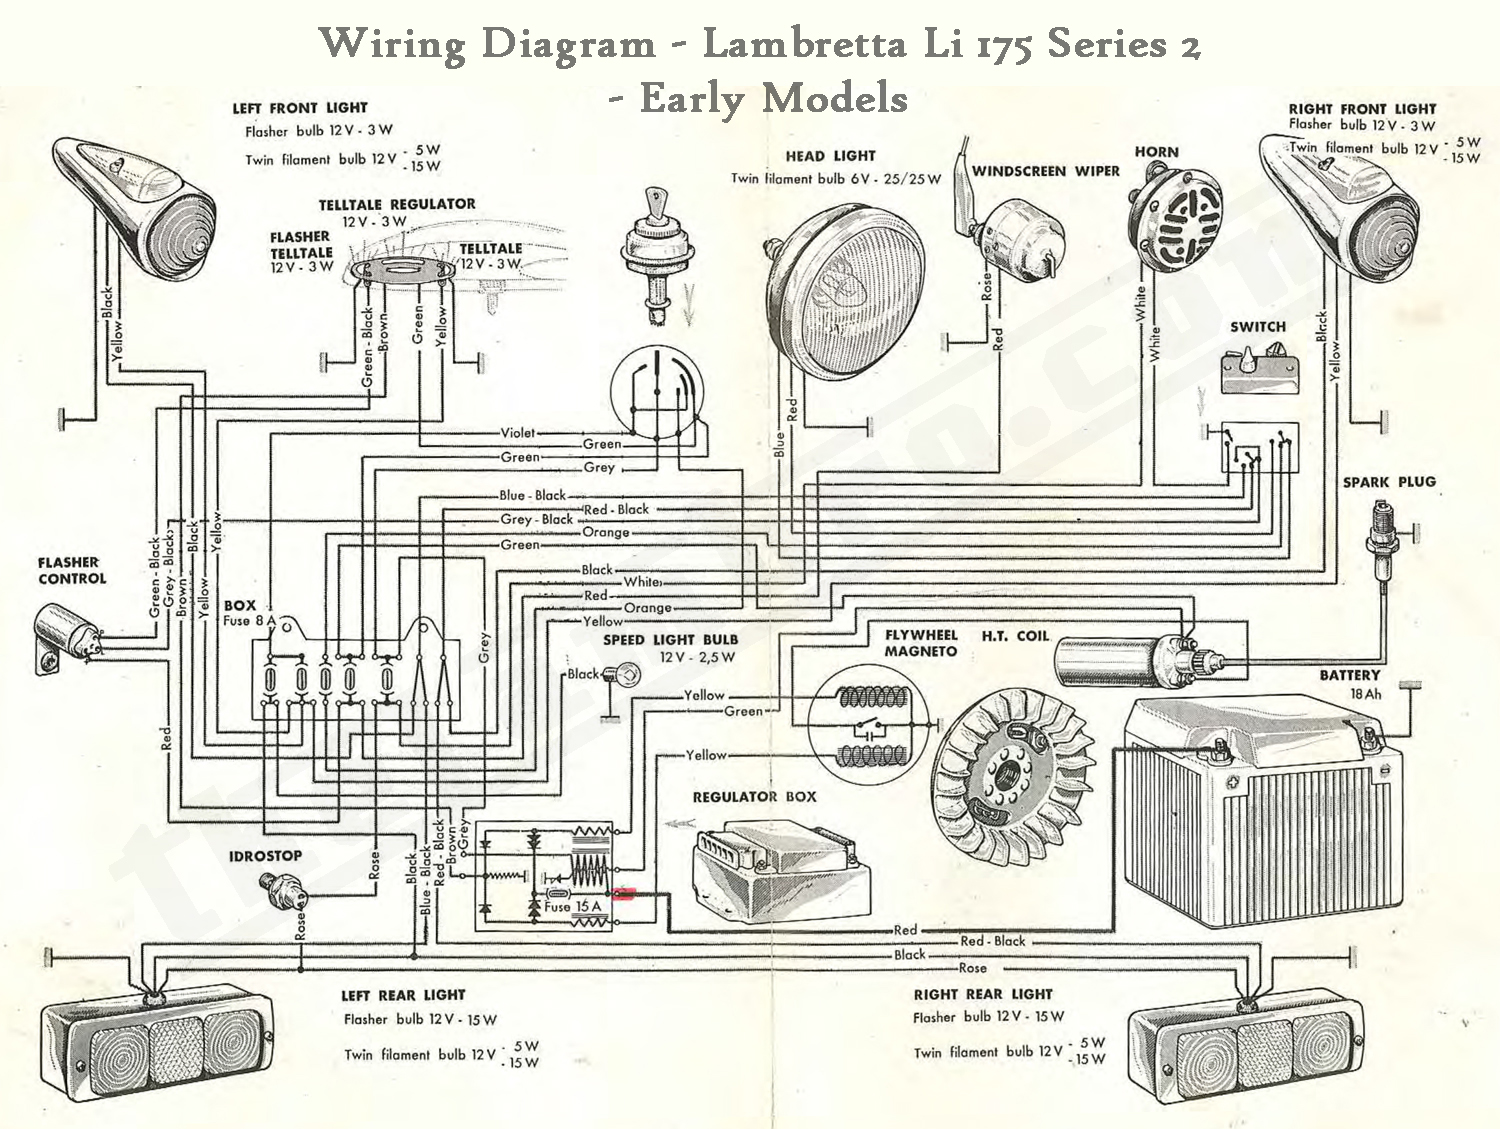 Series Wiring Diagram : Lambretta wiring diagram images